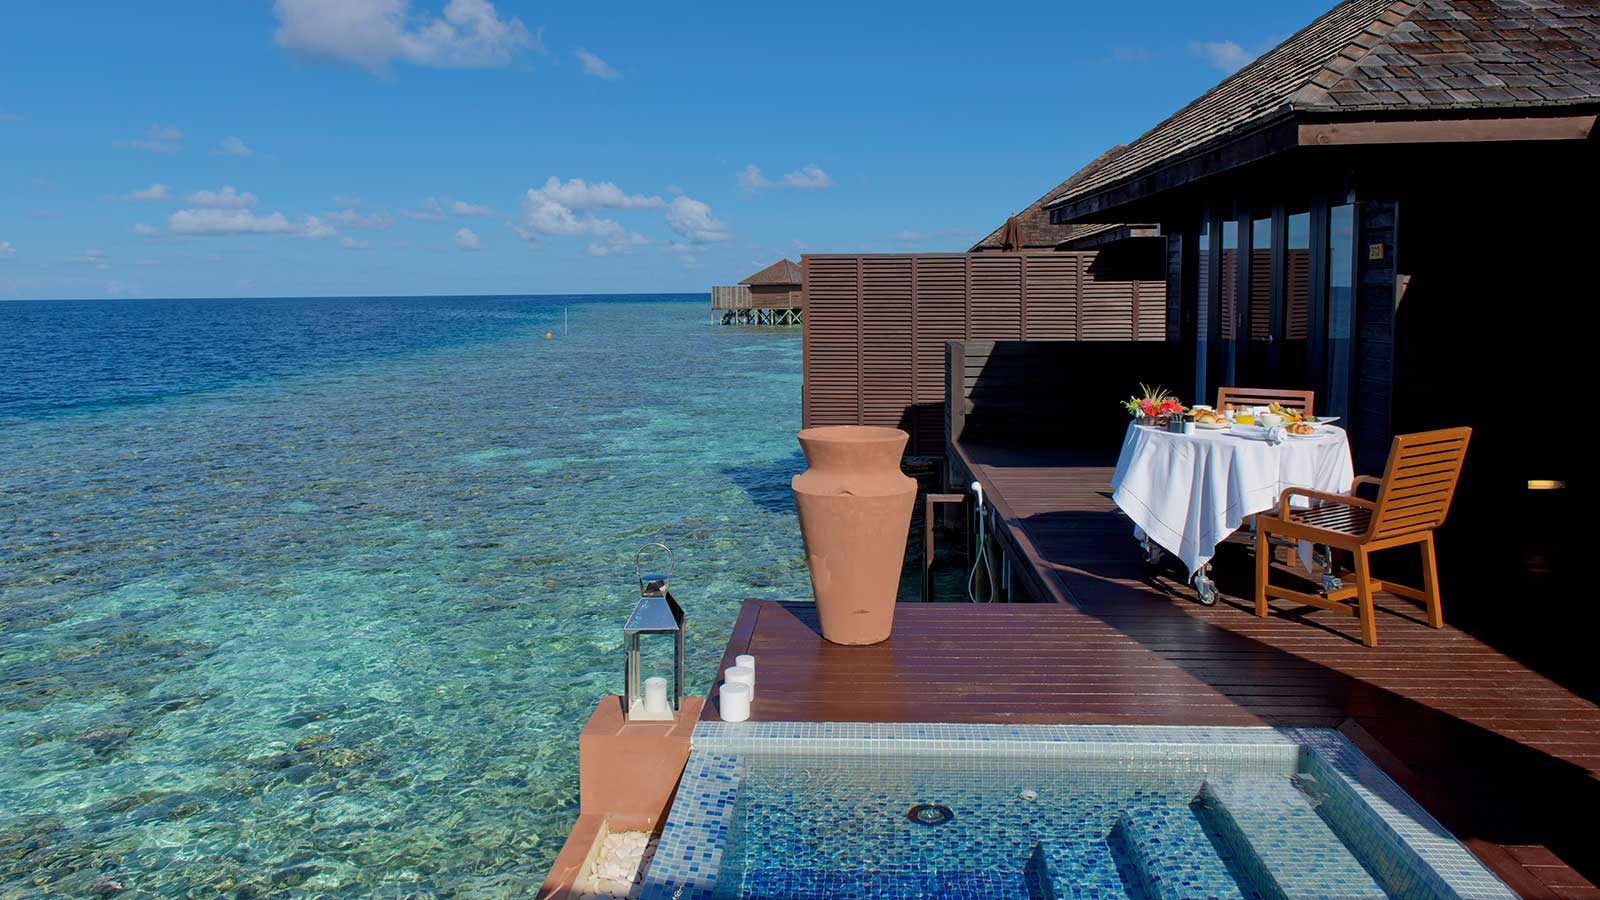 Maldives Deluxe Water Villas Maldives Accommodation